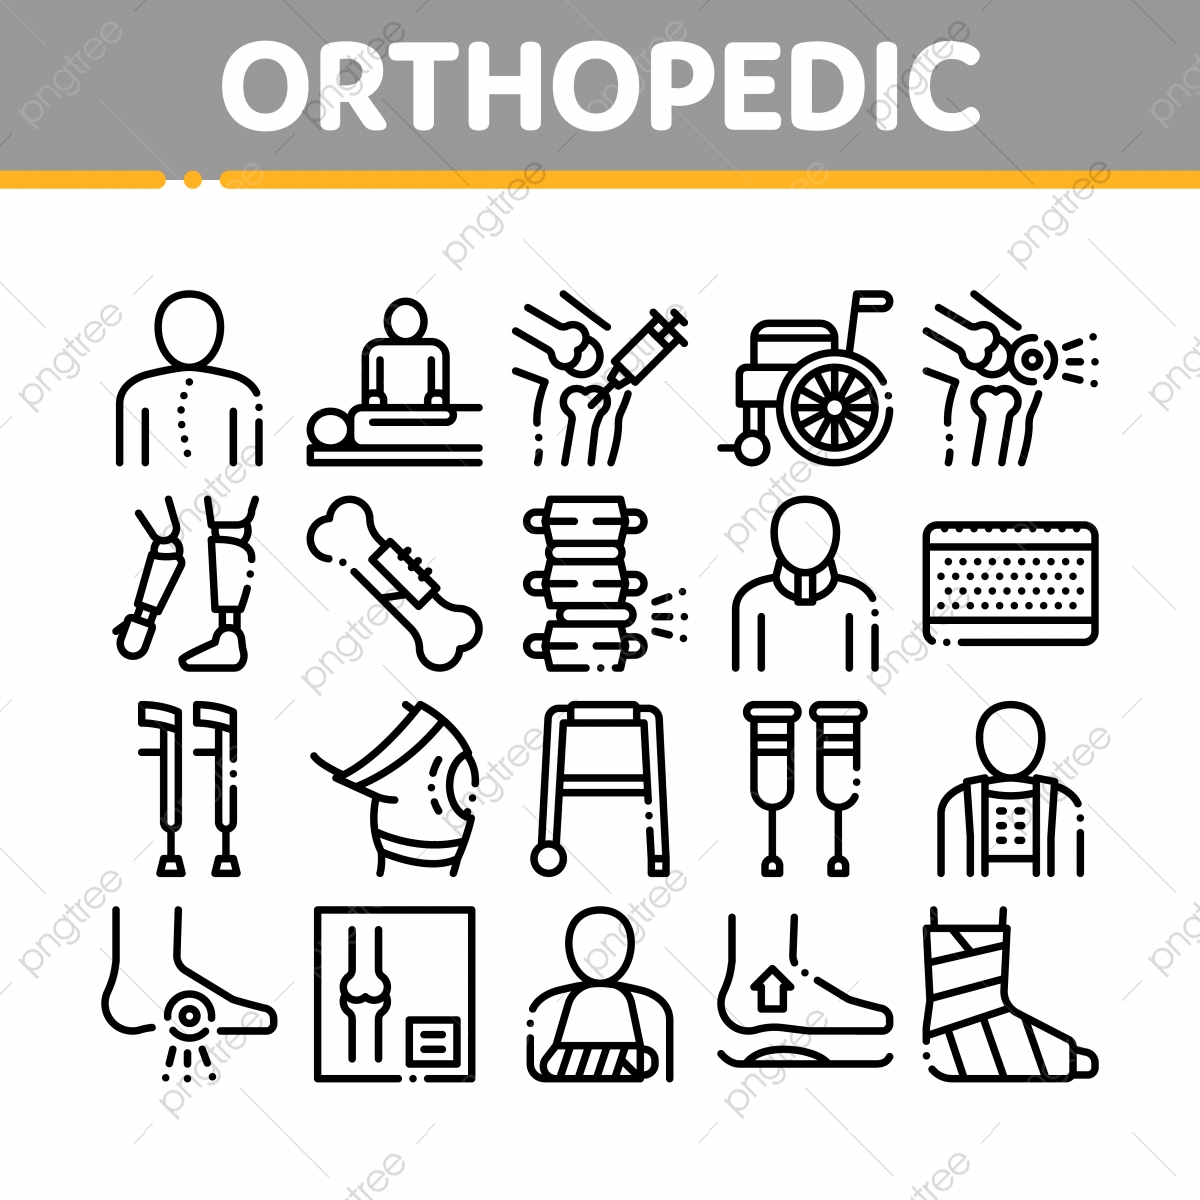 Orthopedics Png Images Vector And Psd Files Free Download On Pngtree